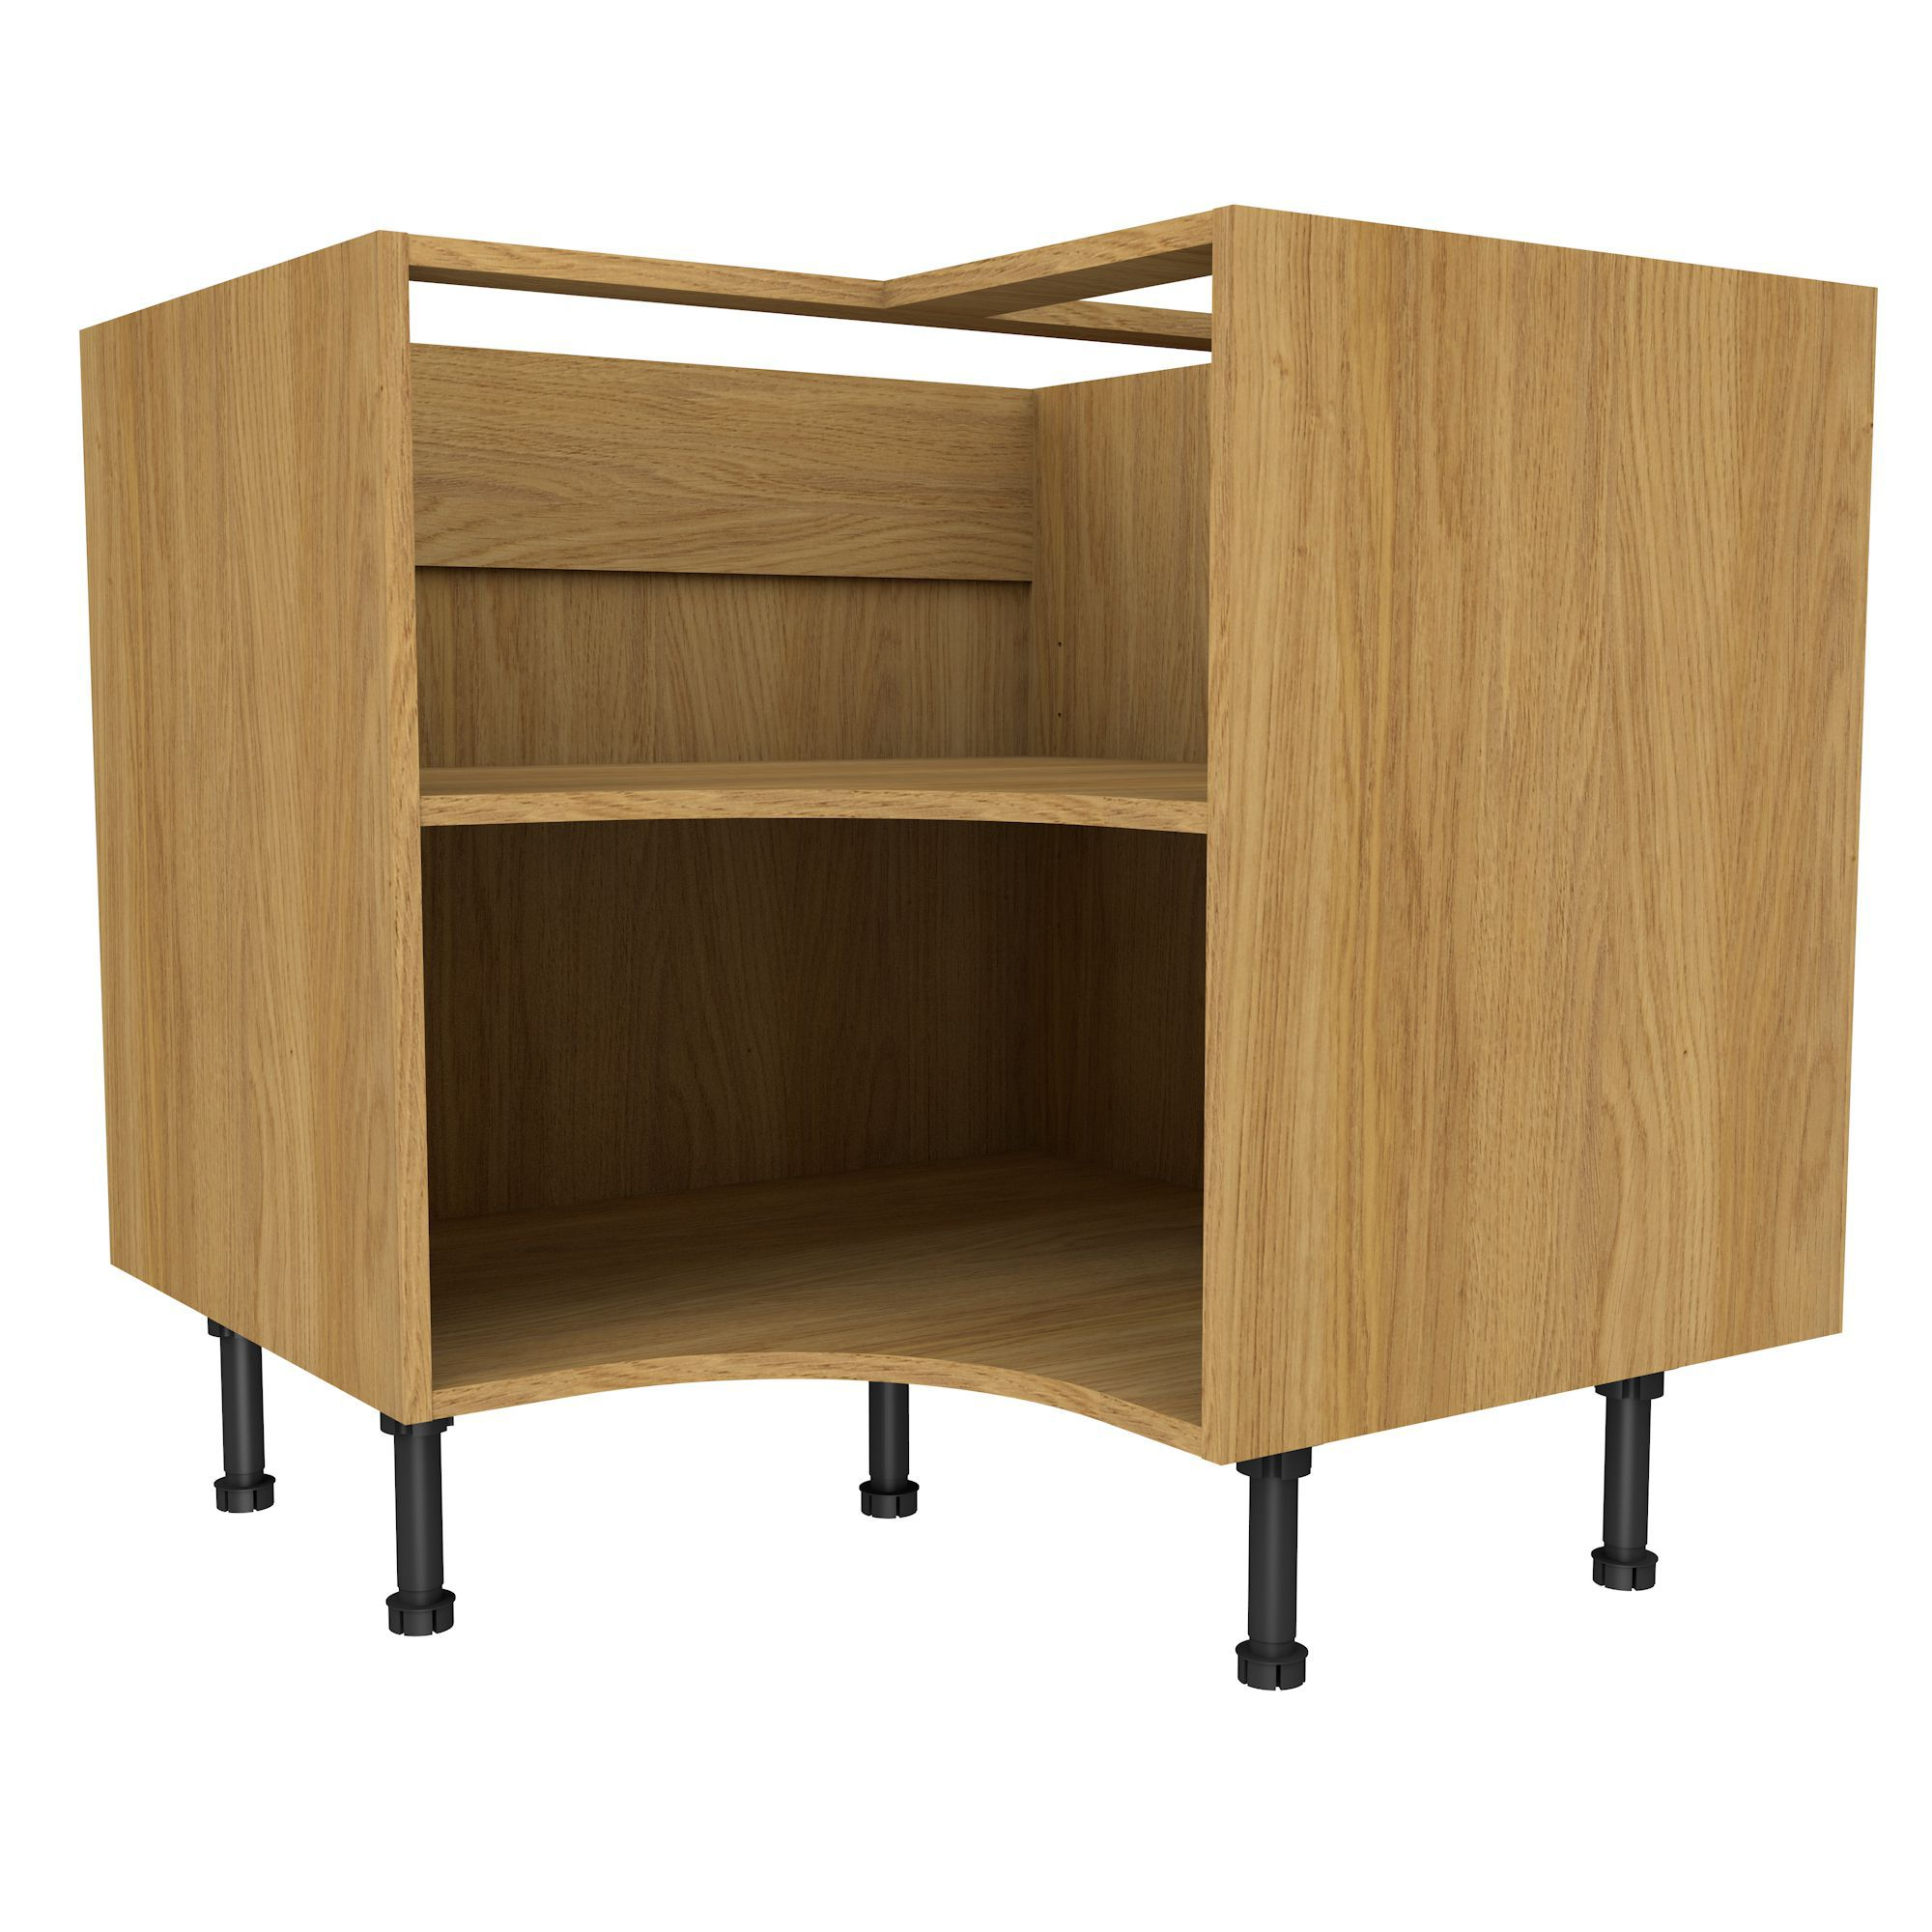 Oak Effect Kitchen Cabinets: Cooke & Lewis Oak Effect Curved Corner Base Cabinet (W